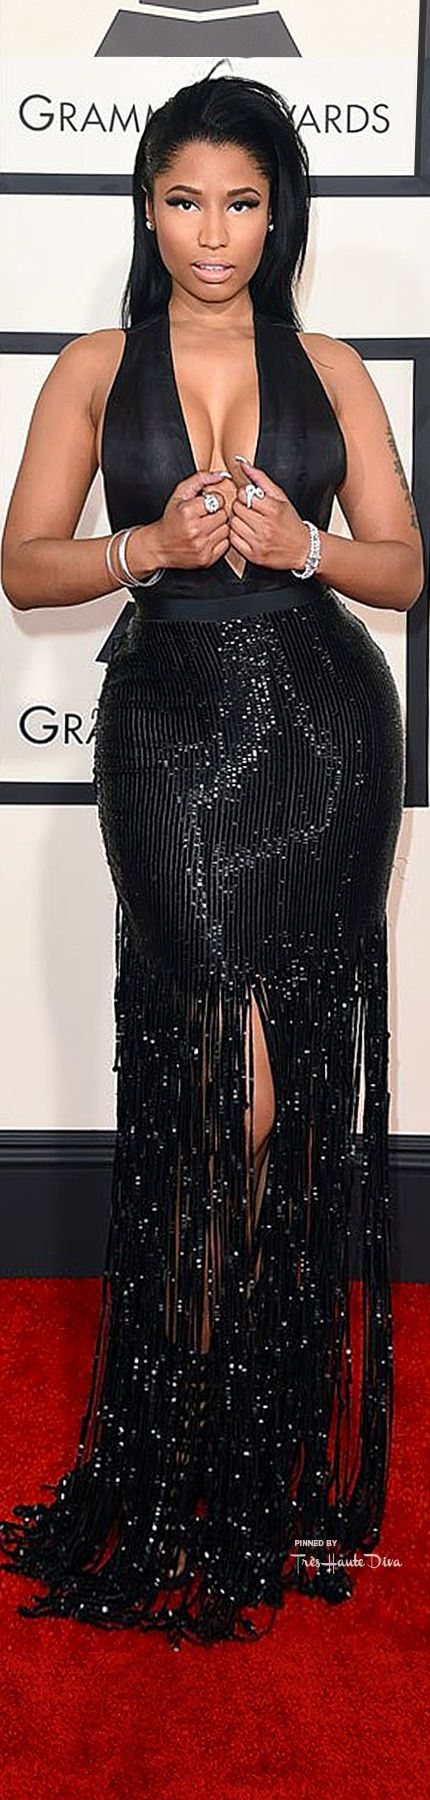 #Nicki #Menaj at the 57th Annual #Grammy Awards 2015 in Tom Ford ♔THD♔